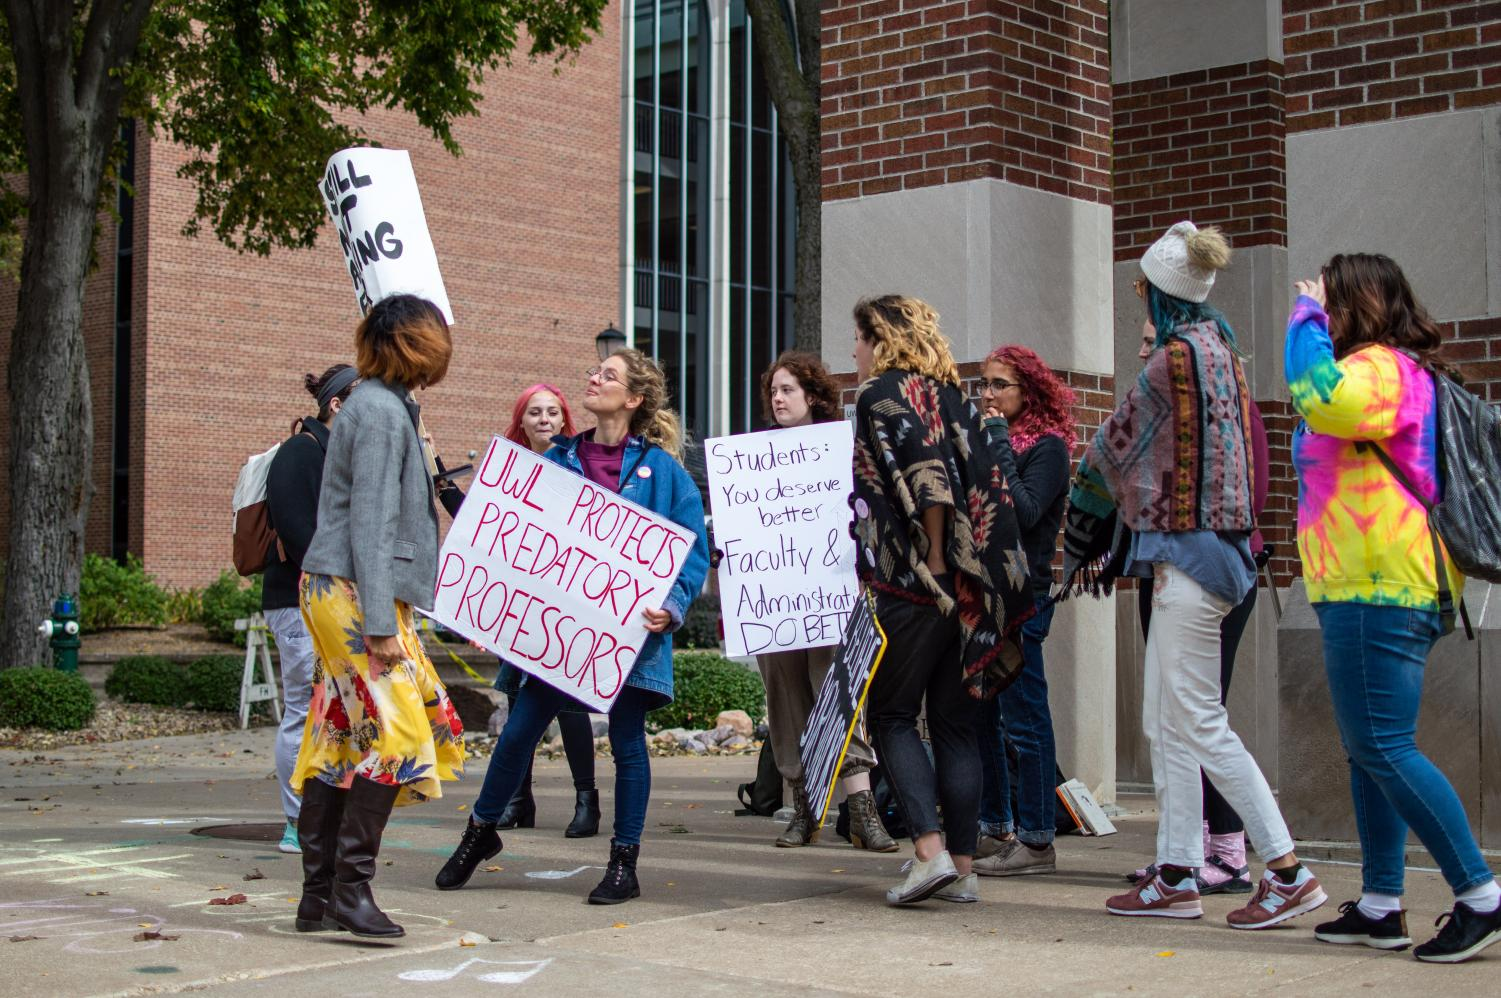 UWL students protesting at the Clock Tower in result of recent sexual misconduct allegations on campus. Photo by Carly Rundle-Borchert